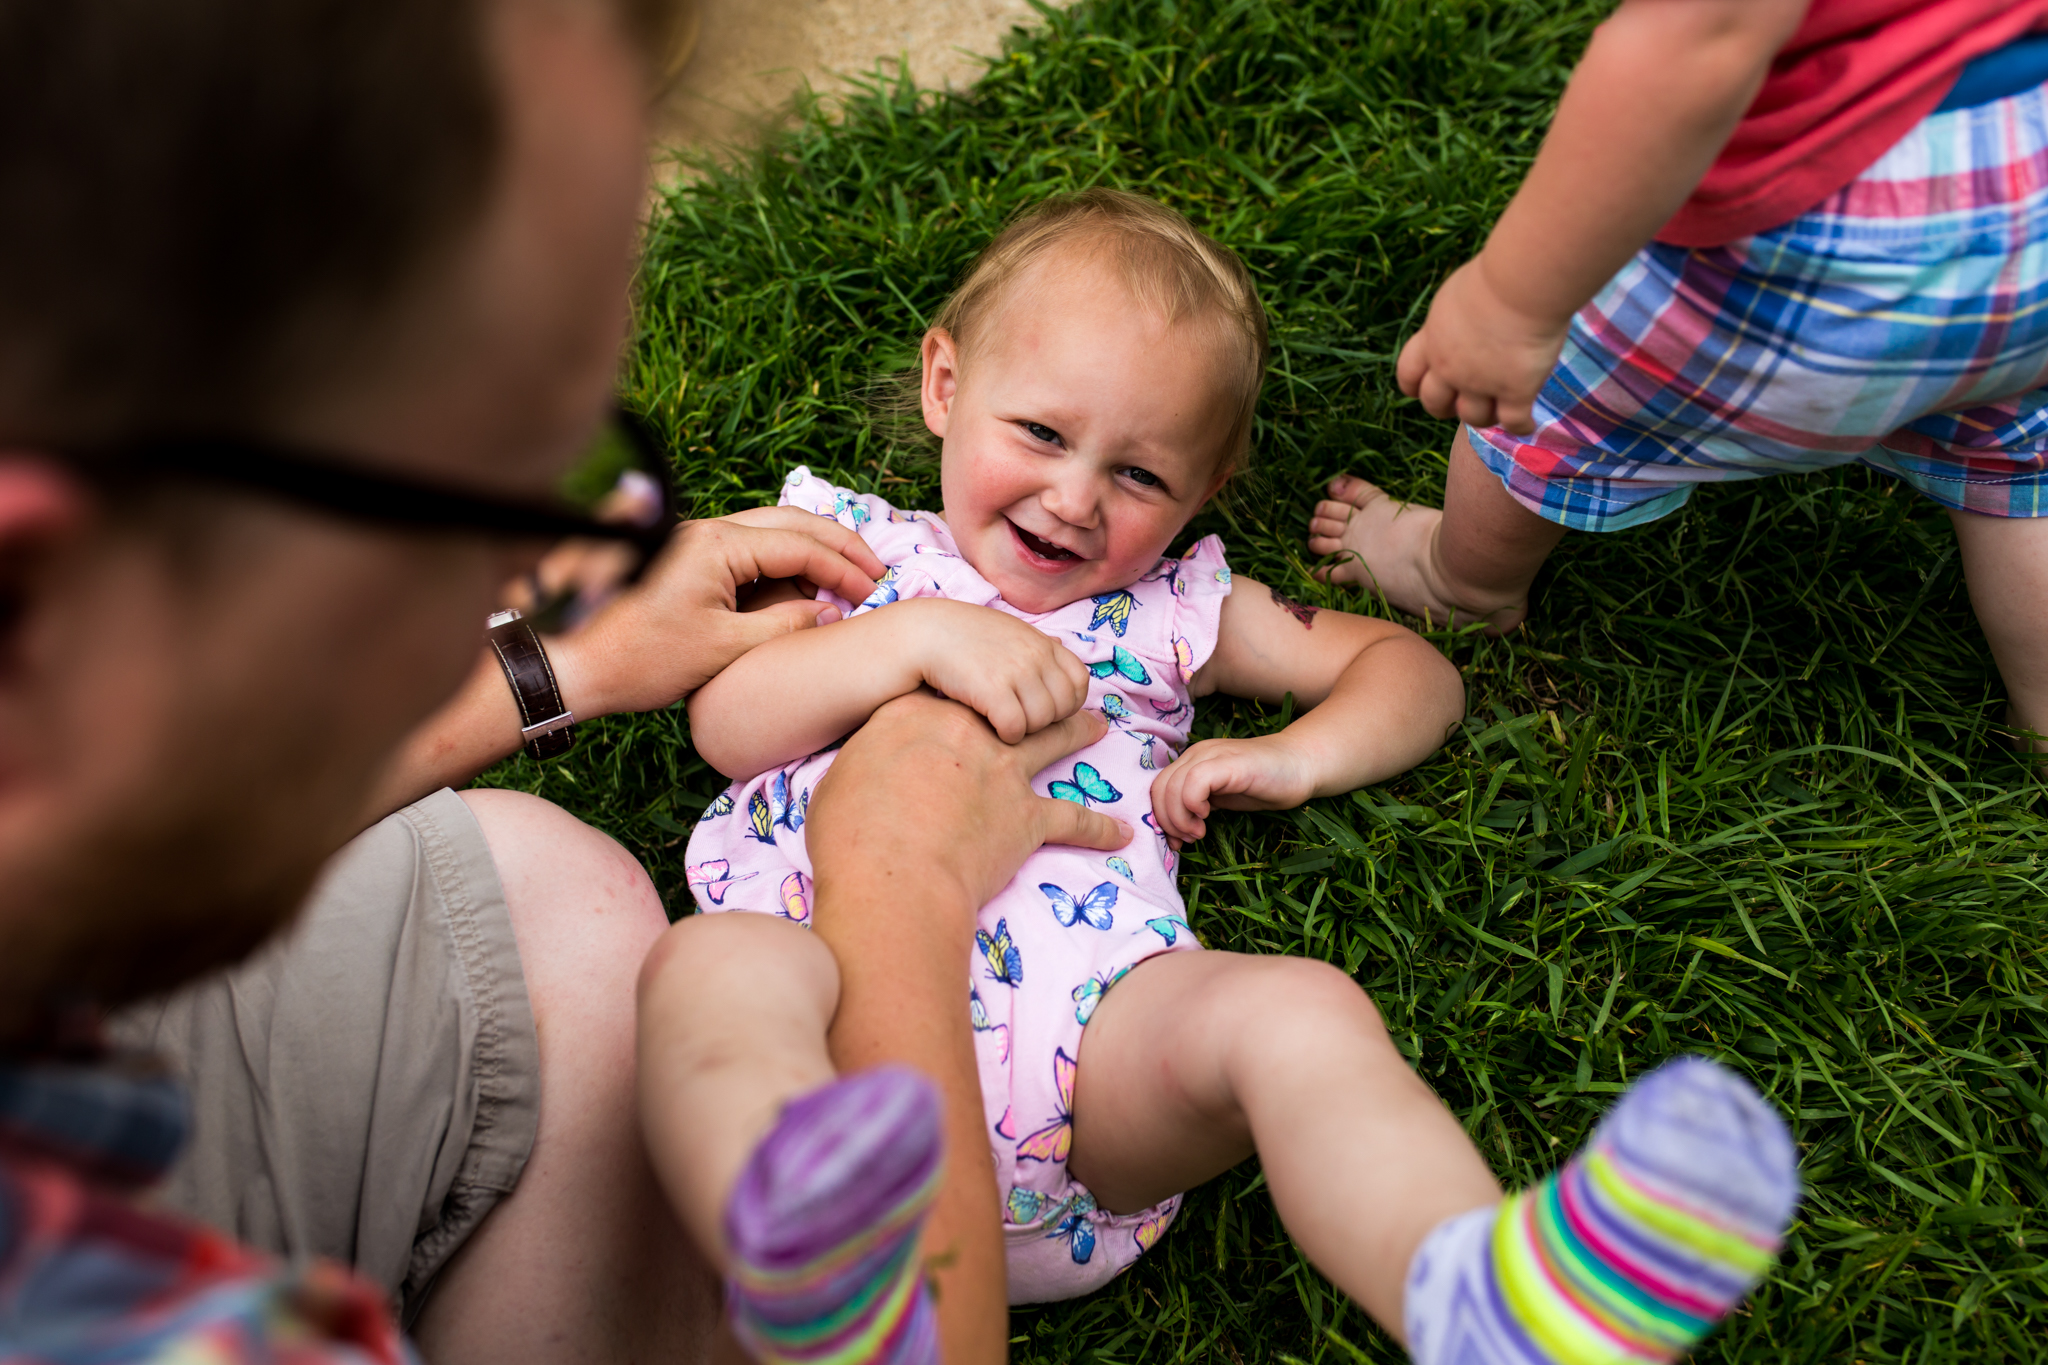 Lawren Rose Photography captures a fun moment of a father tickling his daughter in the grass while his son walks by in McKinney Texas